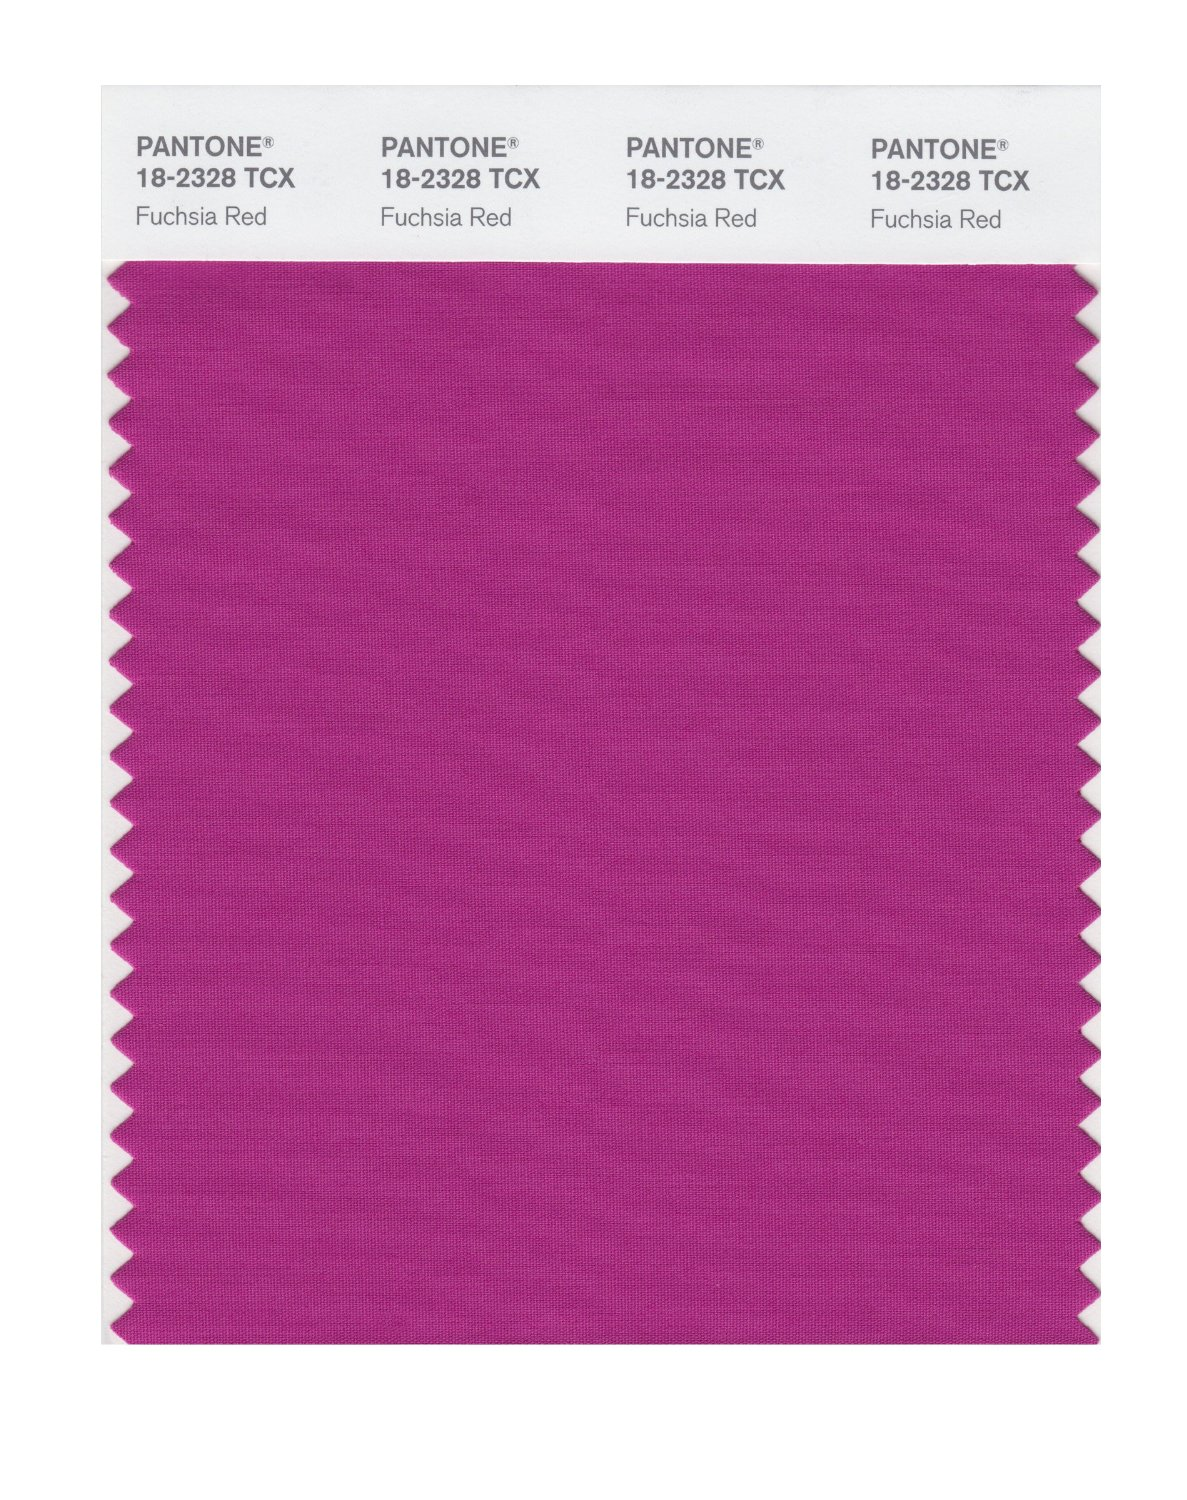 Pantone Smart Swatch 18-2328 Fuchsia Red